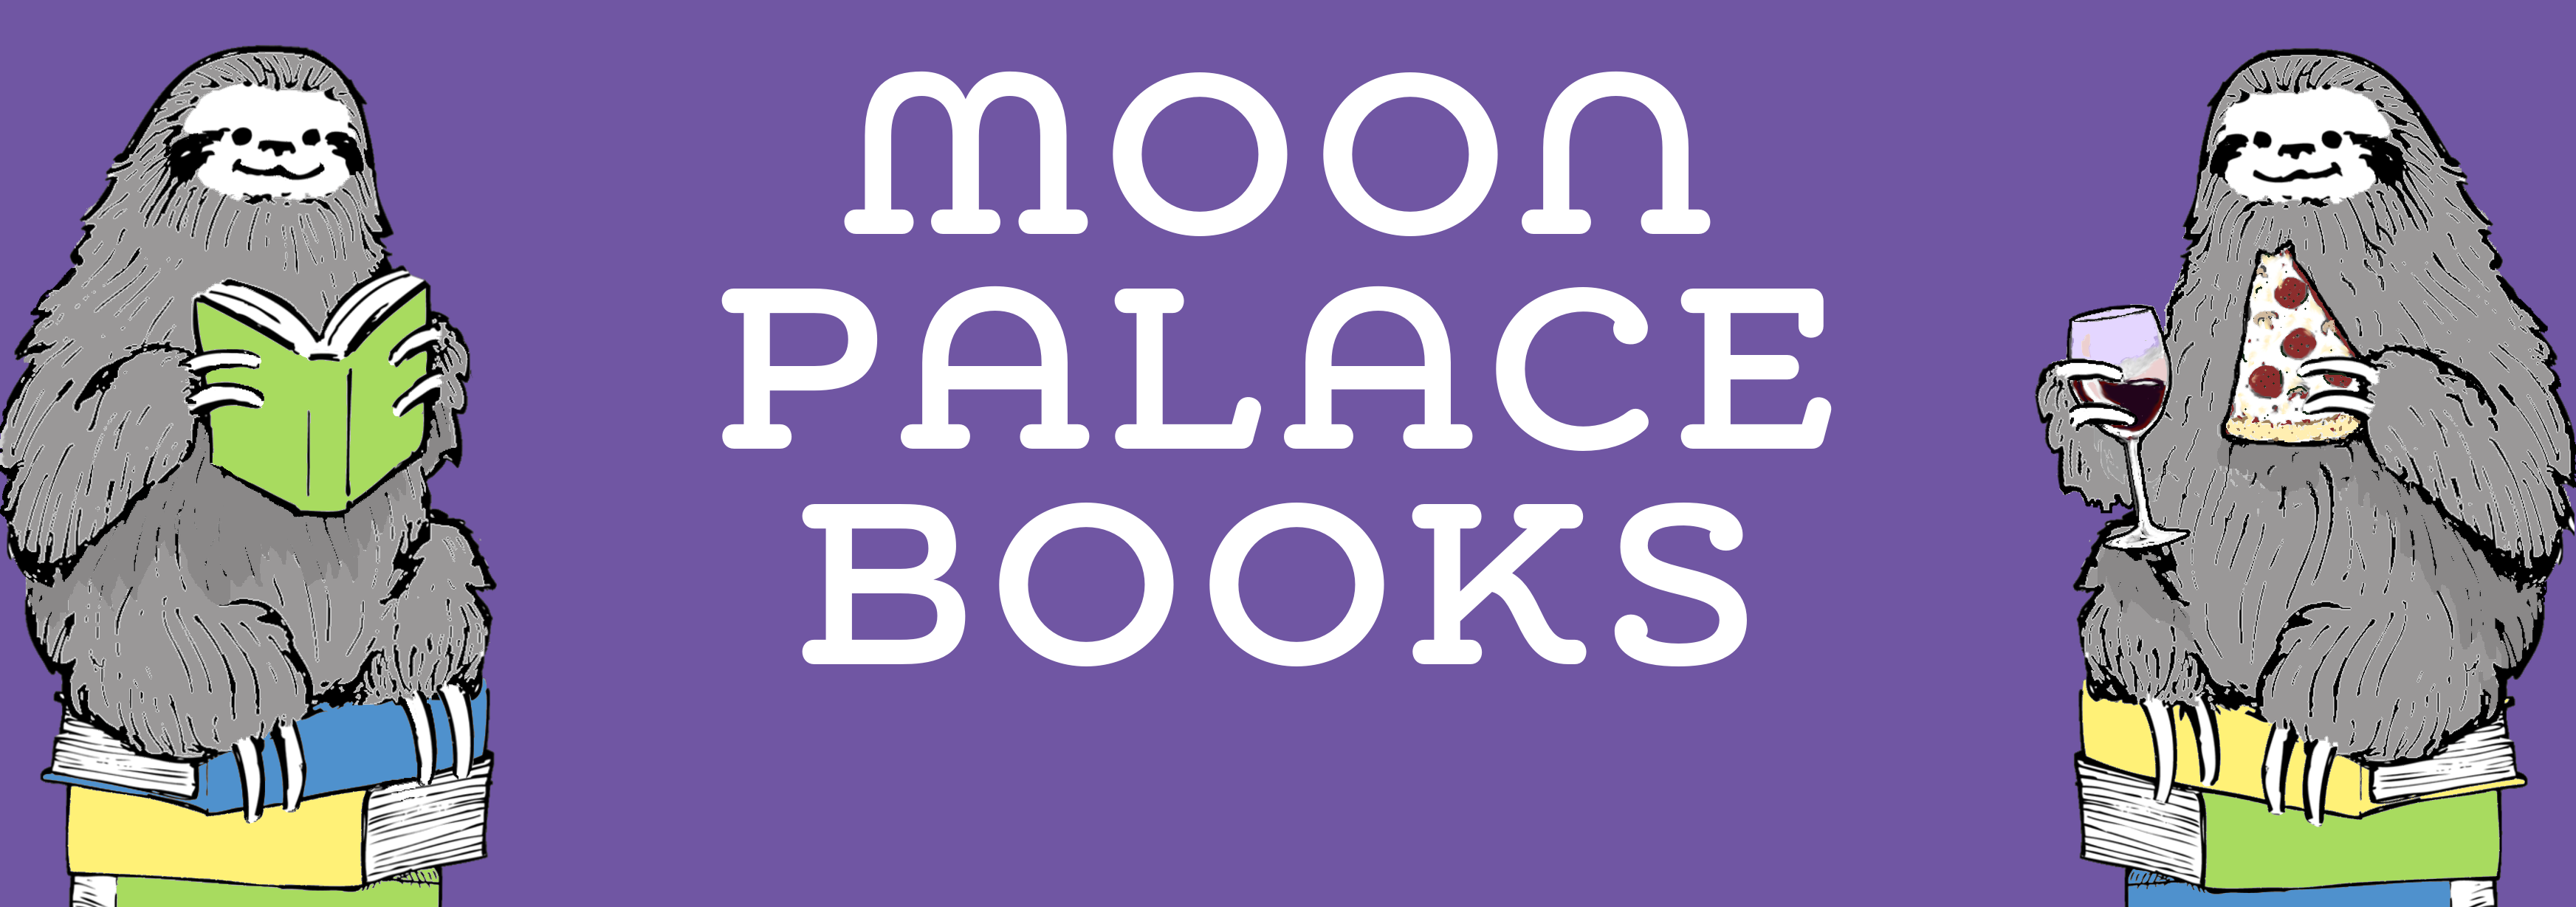 Moon Palace Books 3260 Minnehaha AVe